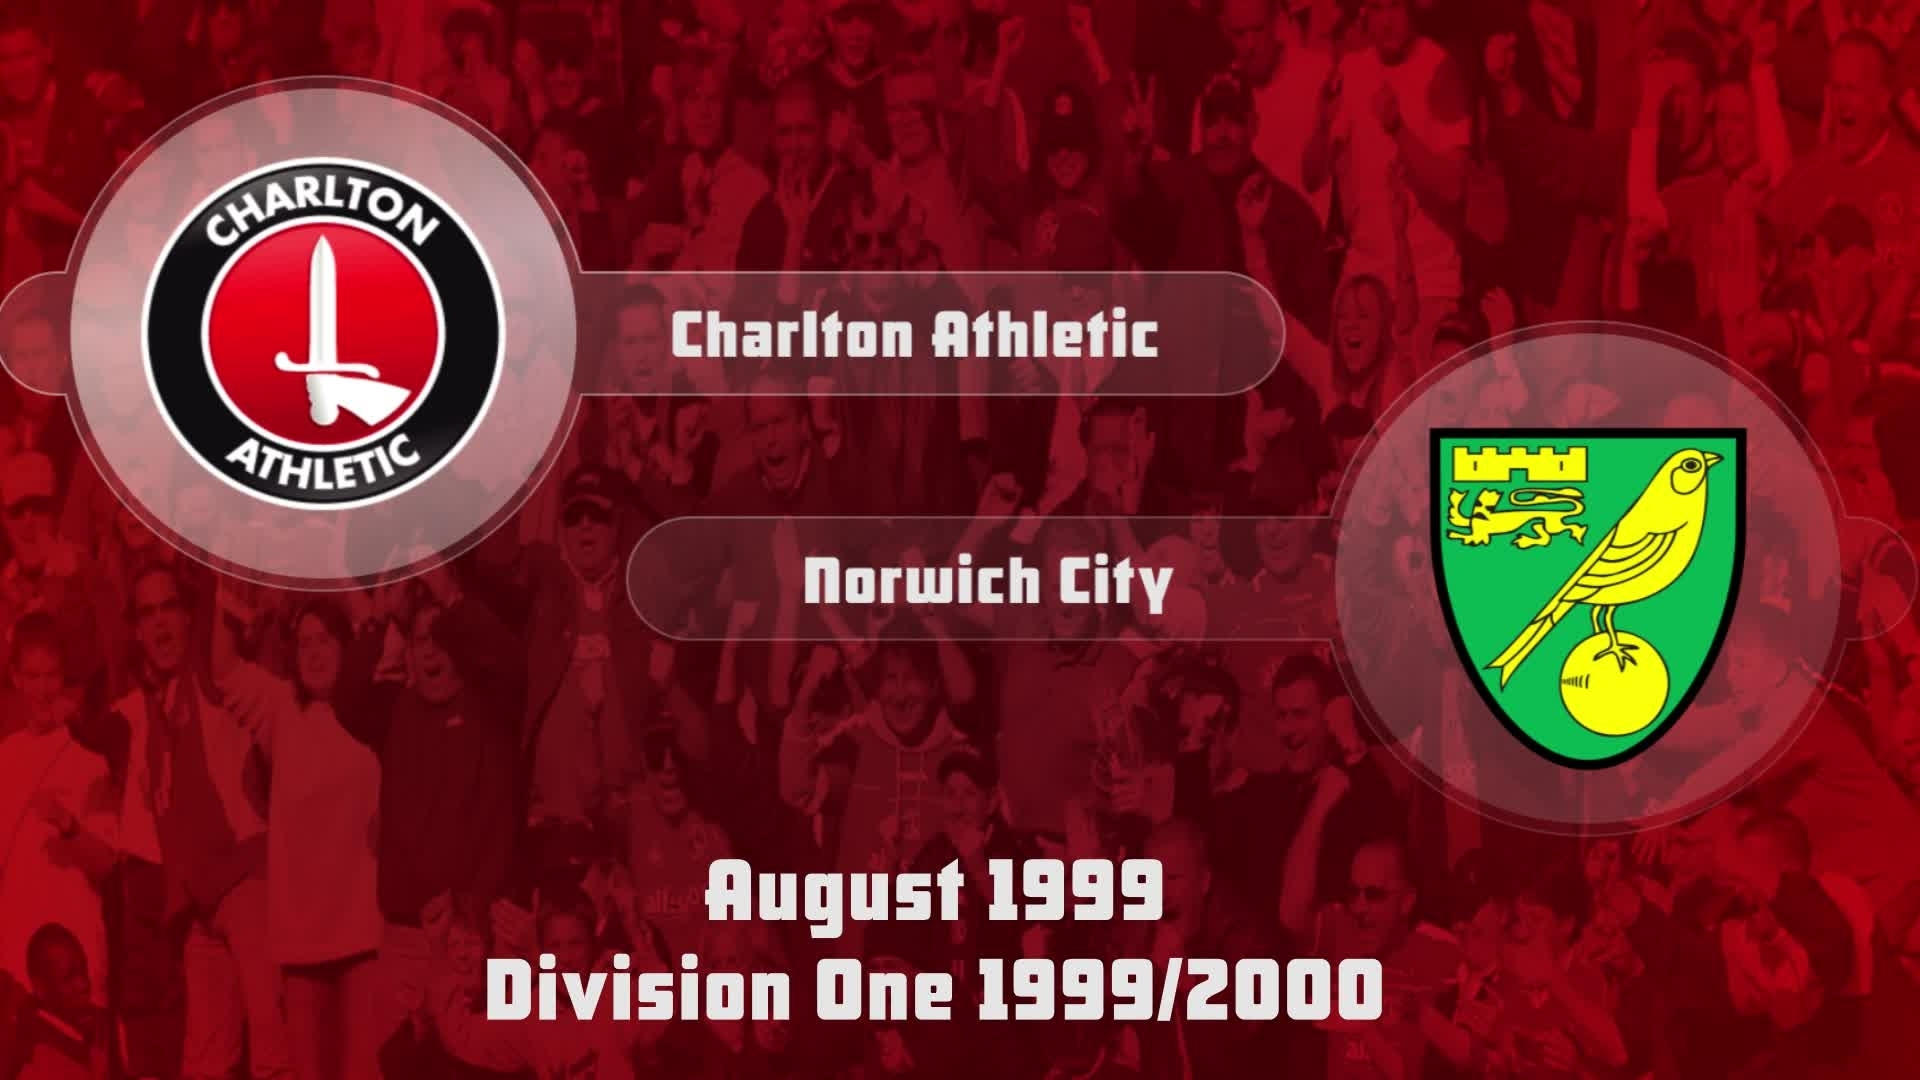 02 HIGHLIGHTS | Charlton 1 Norwich 0 (Aug 1999)